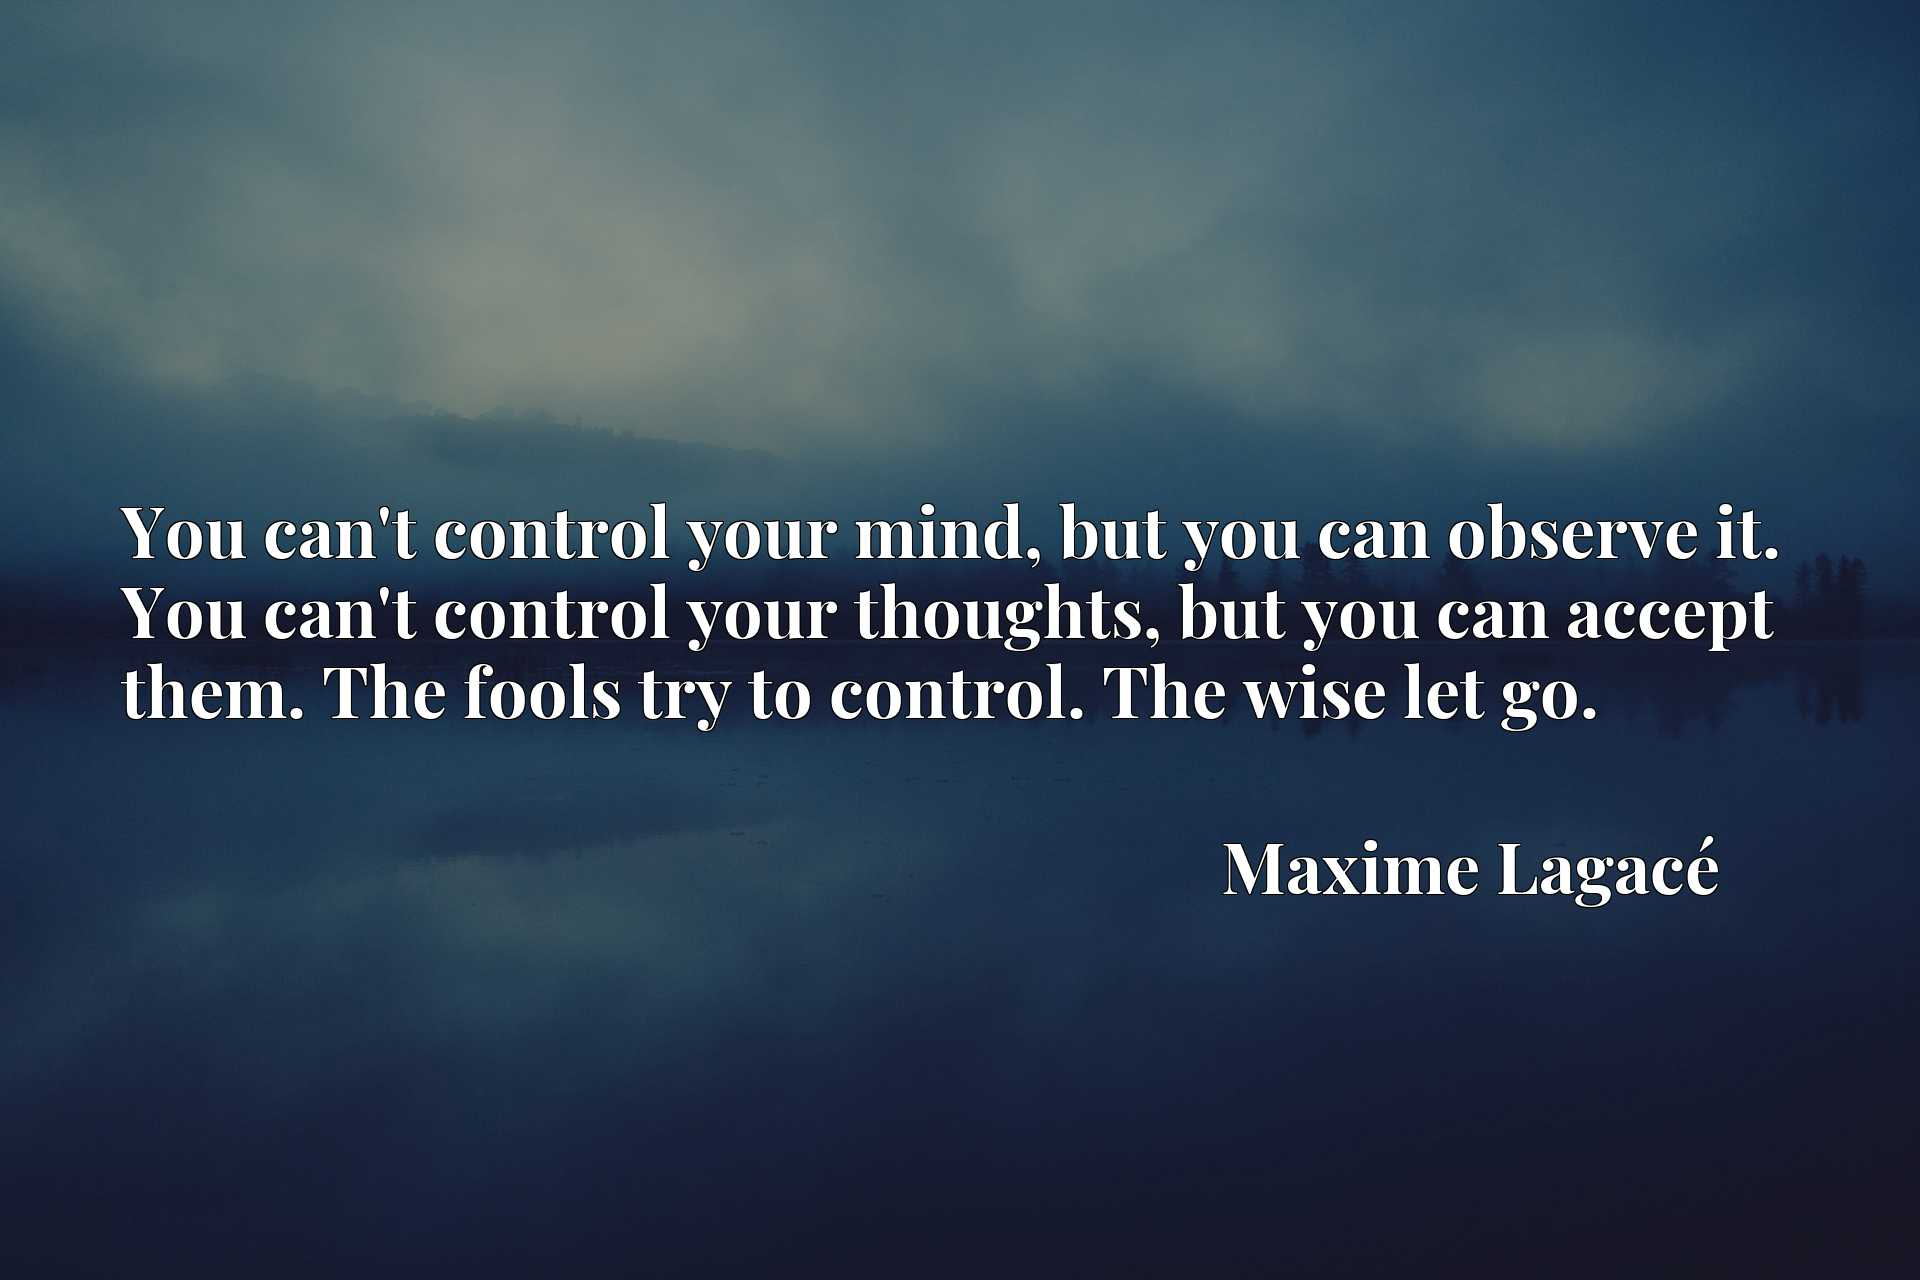 You can't control your mind, but you can observe it. You can't control your thoughts, but you can accept them. The fools try to control. The wise let go.